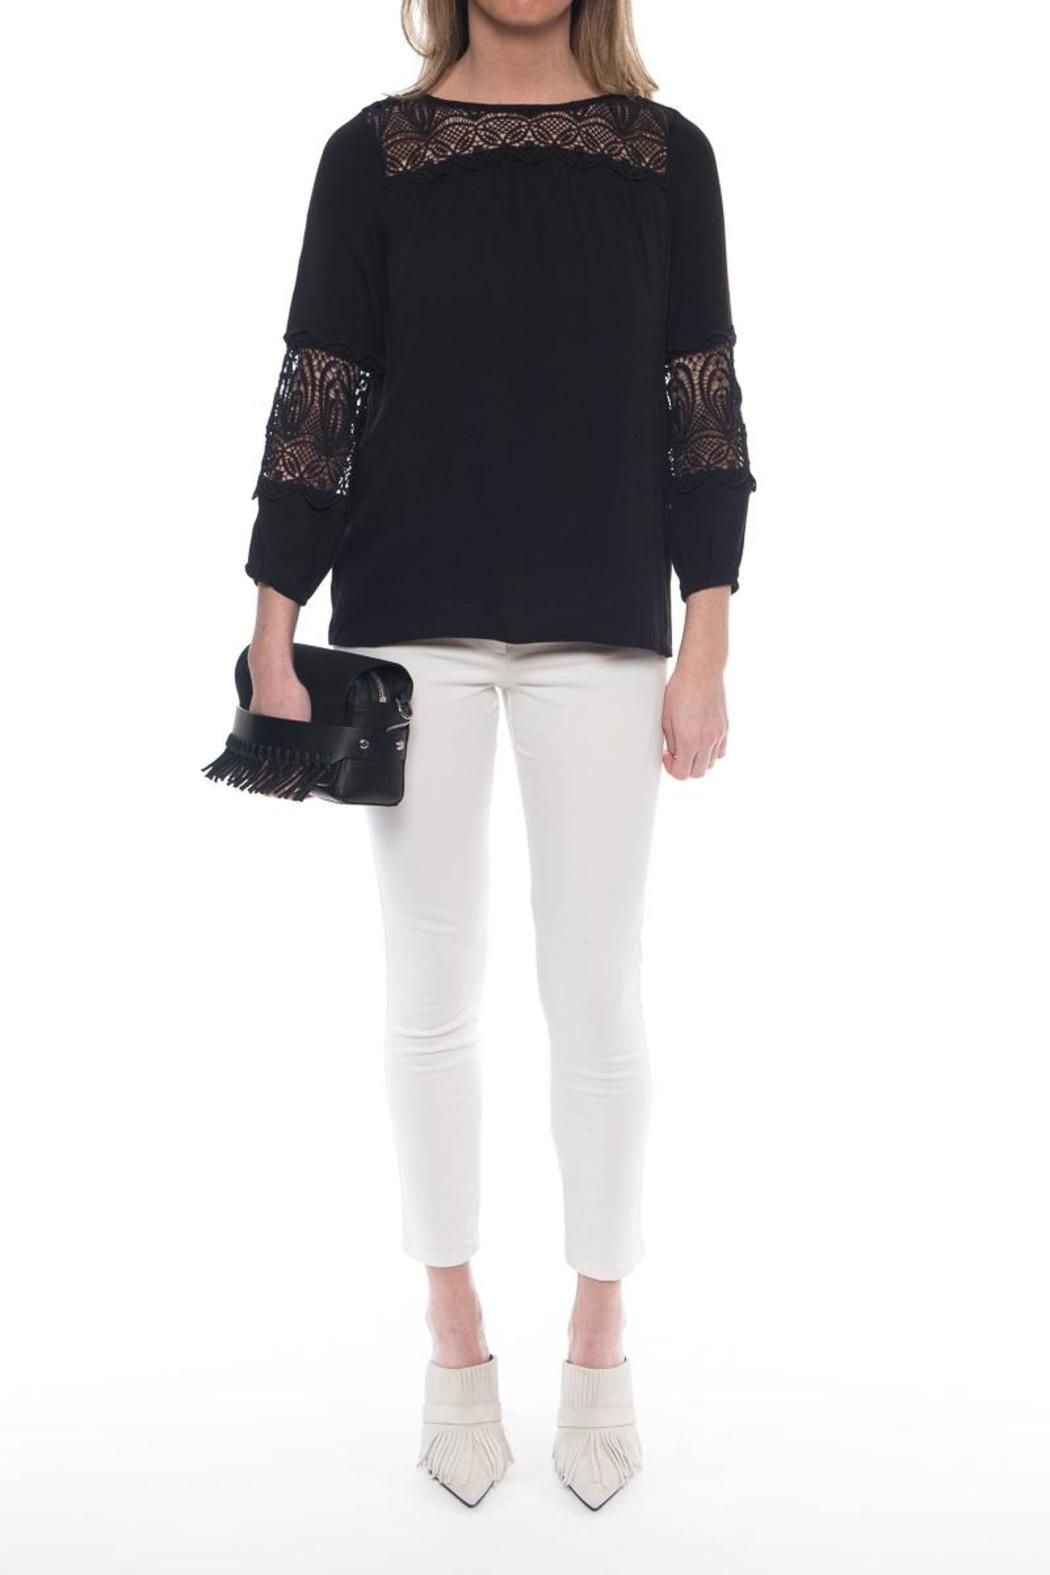 9a3d18b72 The Coastal top from Joie is a vintage inspired long-sleeve top that  features a relaxed and flowy fit. We adore the lace insets around the neck  and sleeves ...